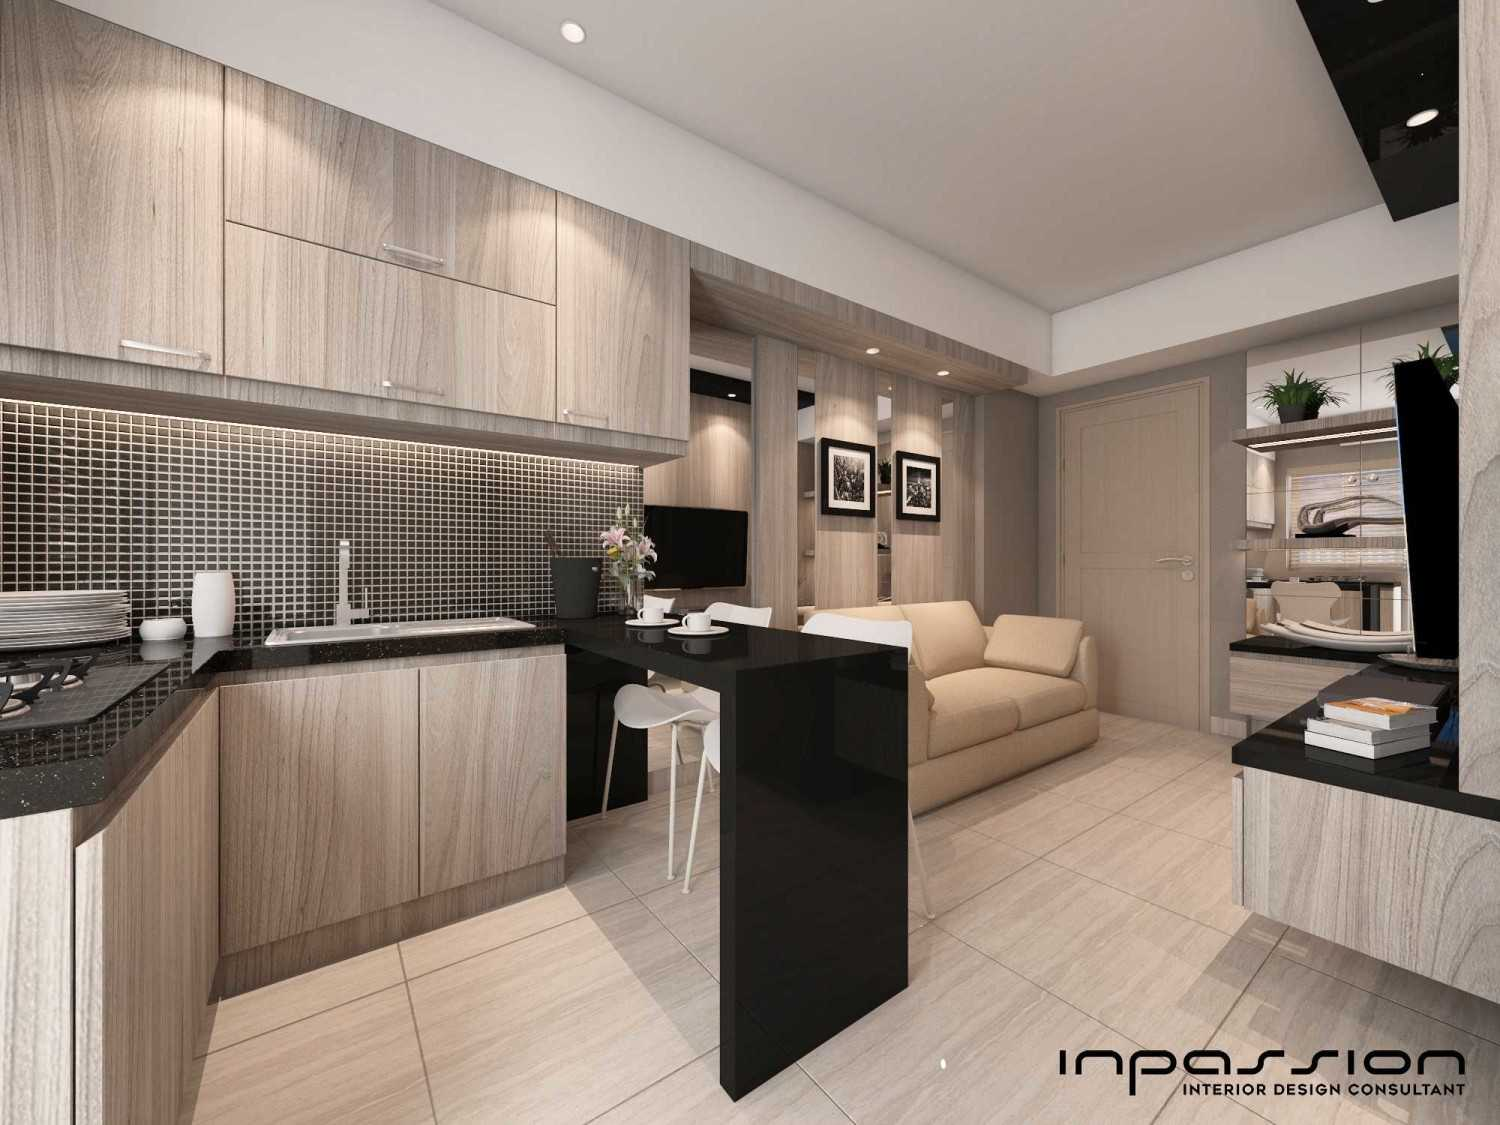 Inpassion Interior Design di Kupang